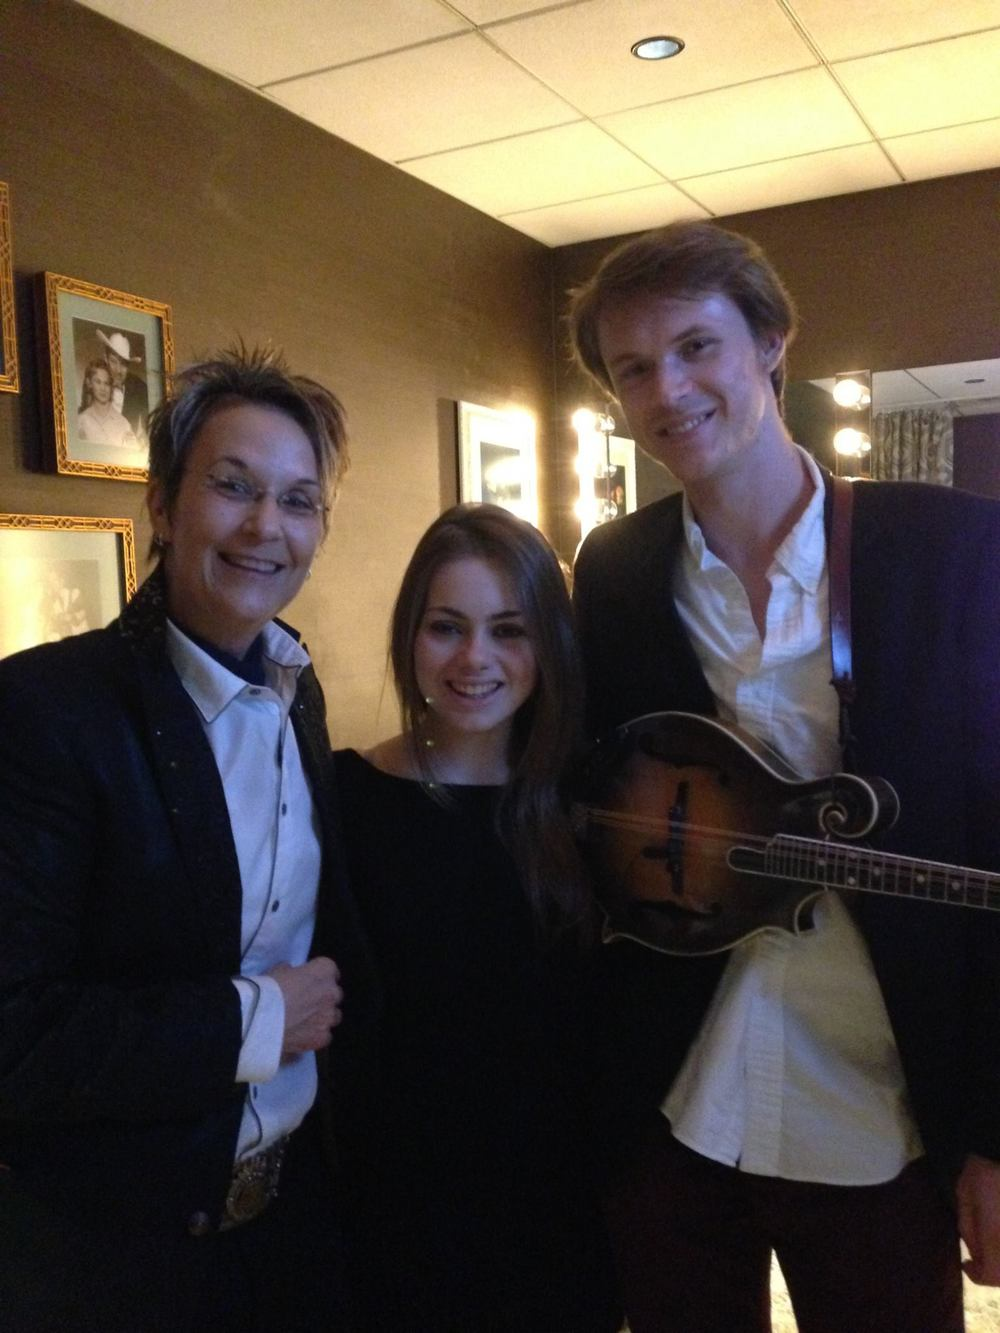 Mary Gauthier, Kate Lee, Forrest O'Connor  Backstage at the Grand Ole Opry